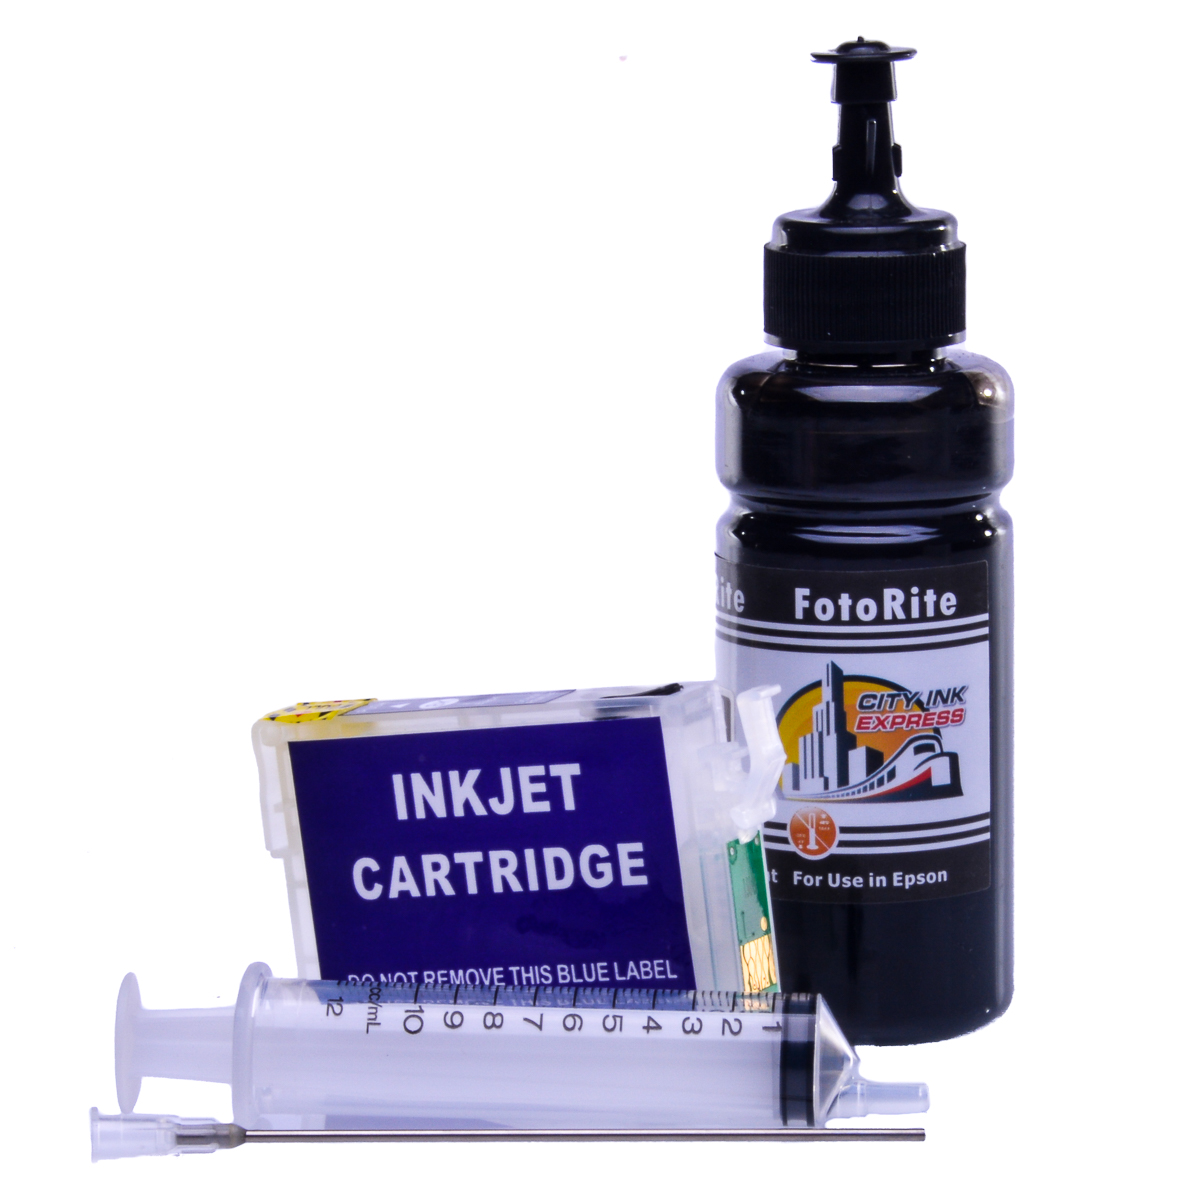 Refillable pigment Cheap printer cartridges for Epson Stylus DX7450 C13T07114010 T0711 Black